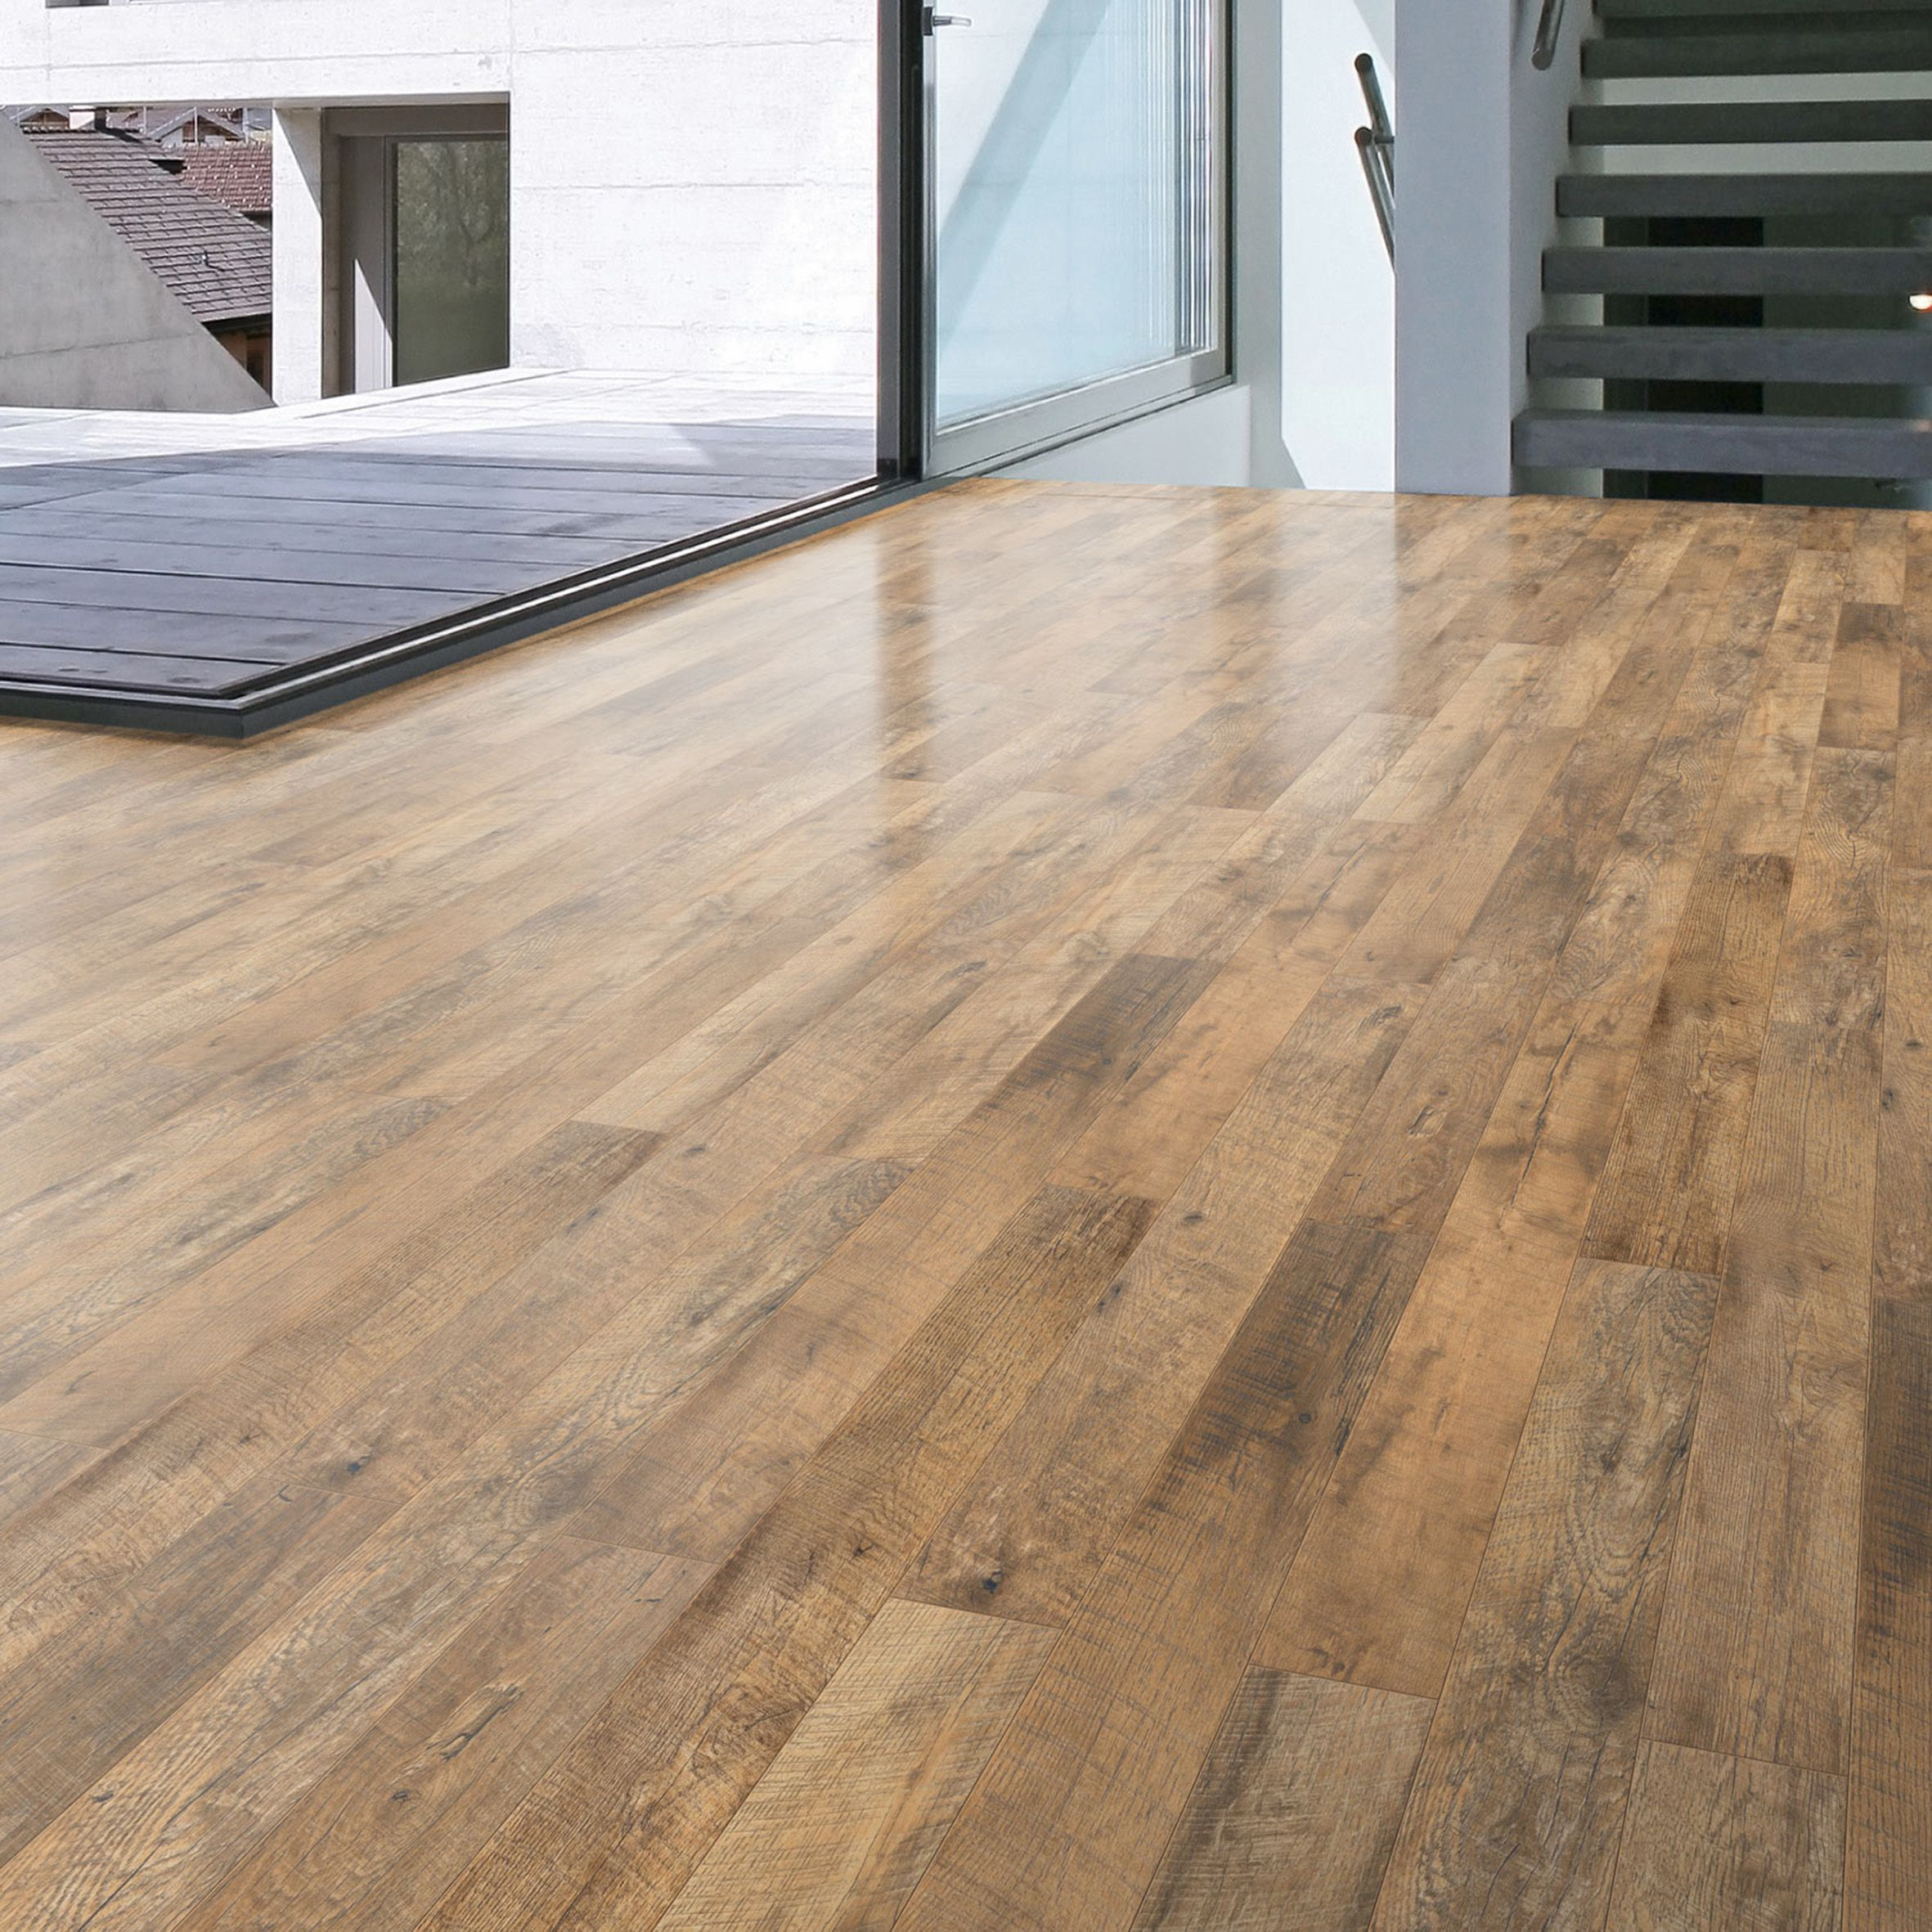 Guarcino Reclaimed Oak Effect Laminate Flooring 1 64 M² Pack